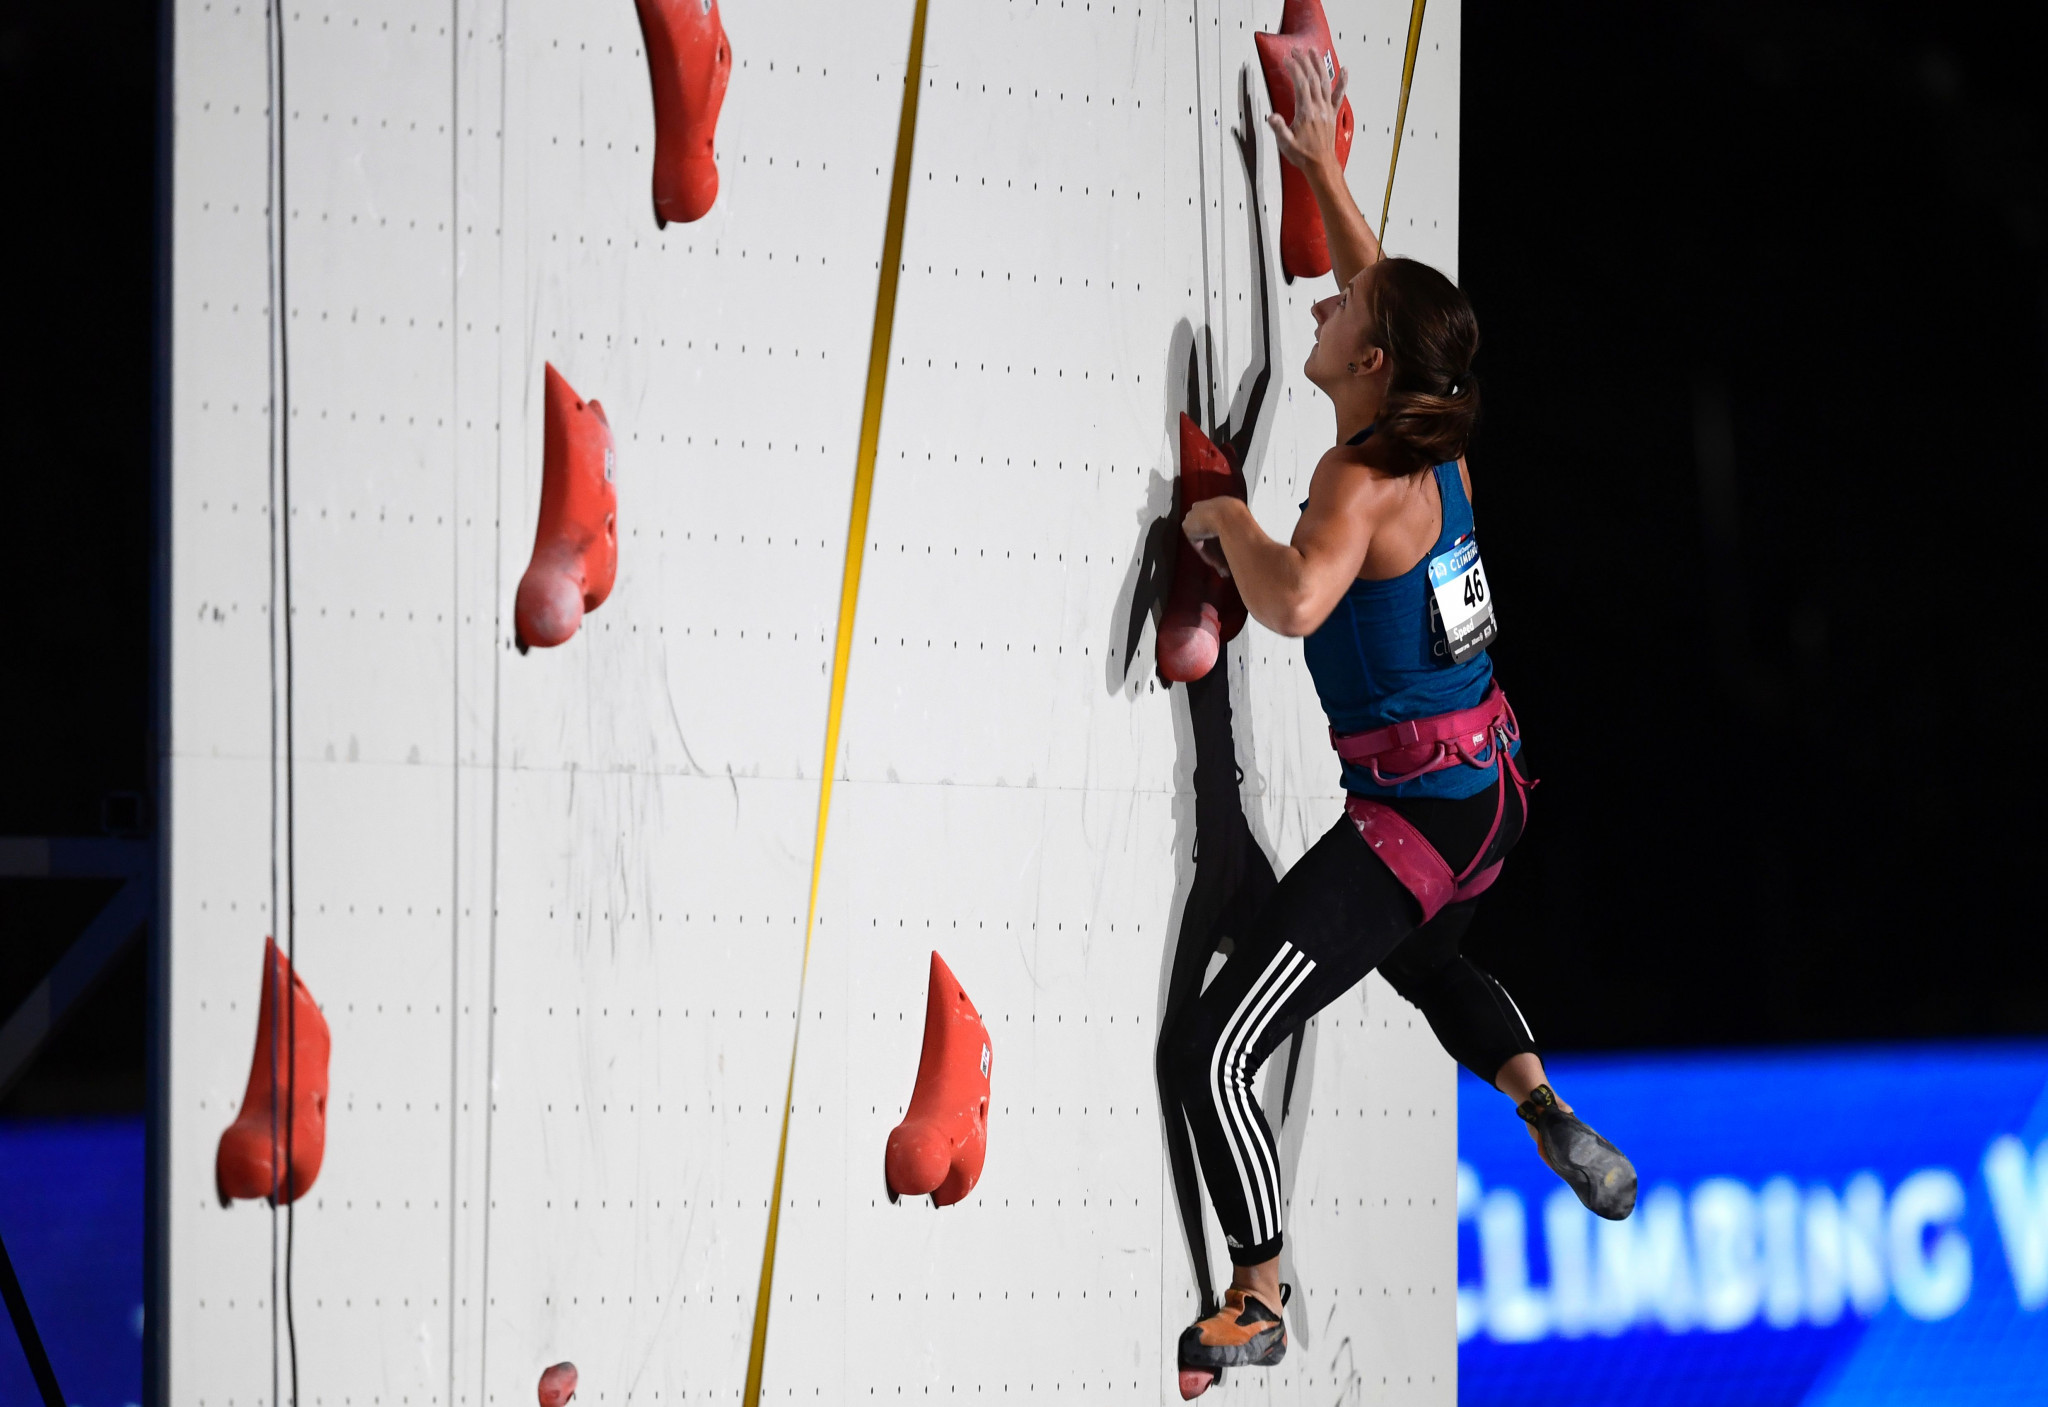 Jaubert and Piccolruaz qualify for Tokyo 2020 after IFSC reallocate unused quota places